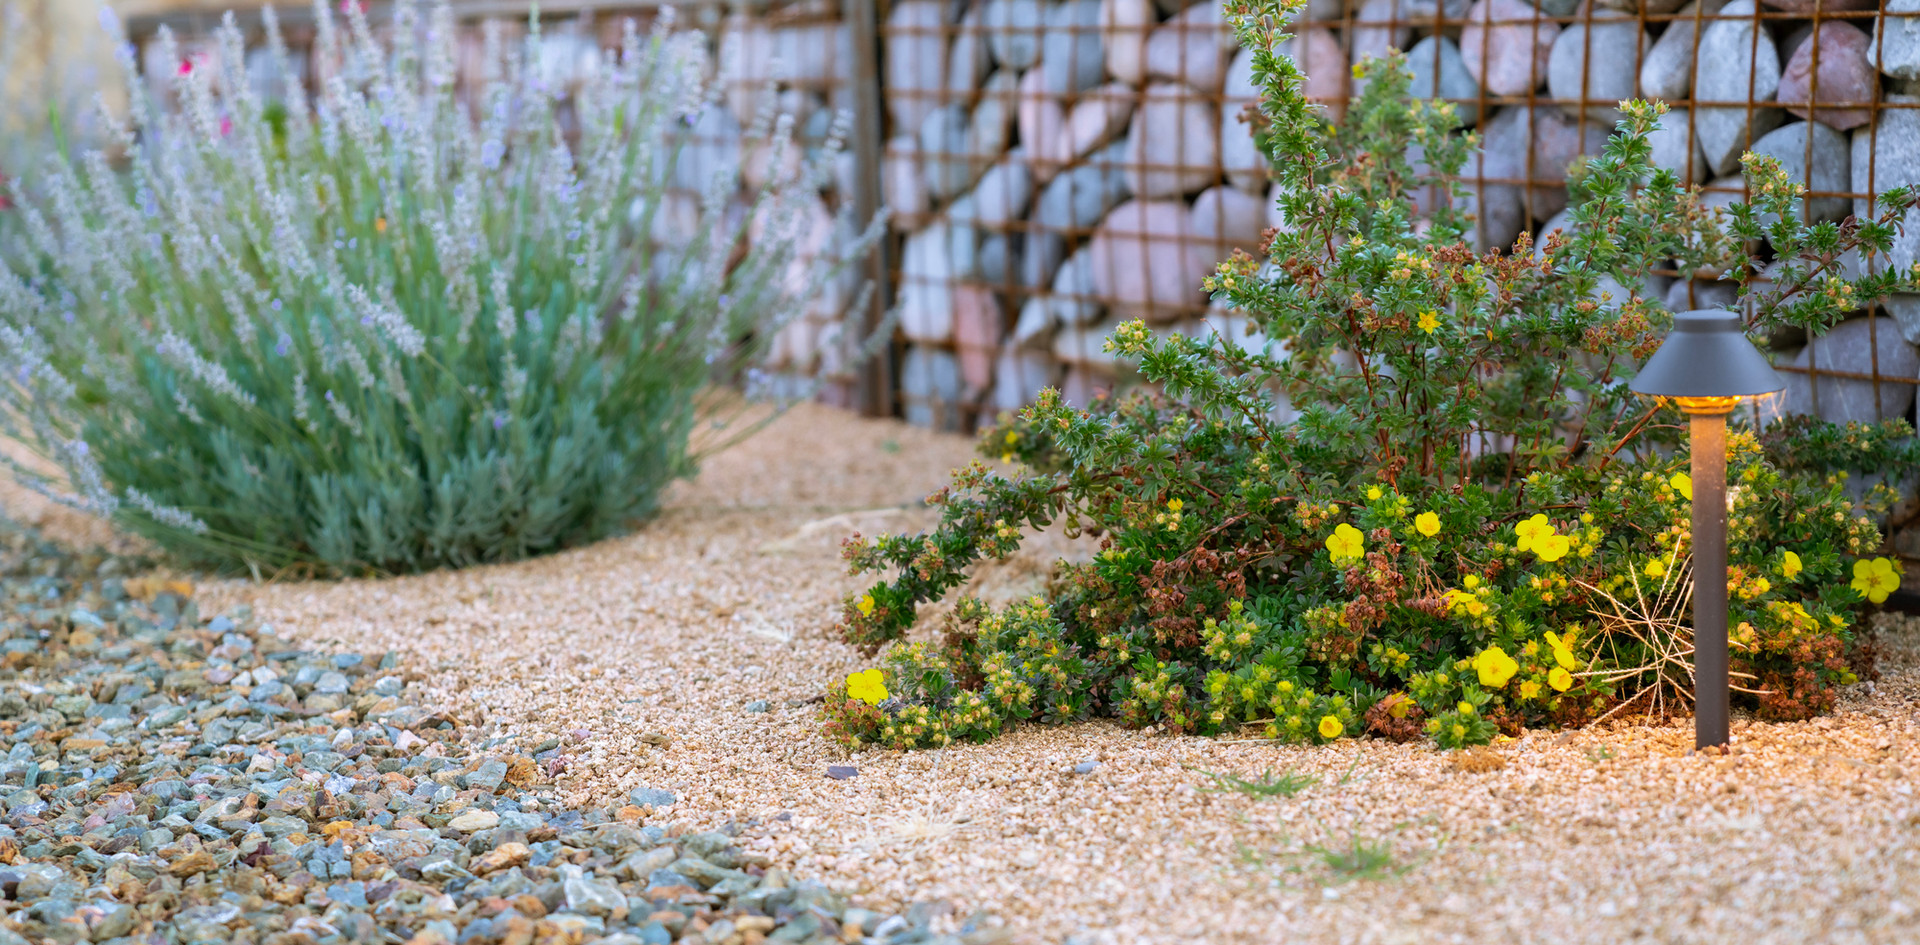 Gabion wall and plants